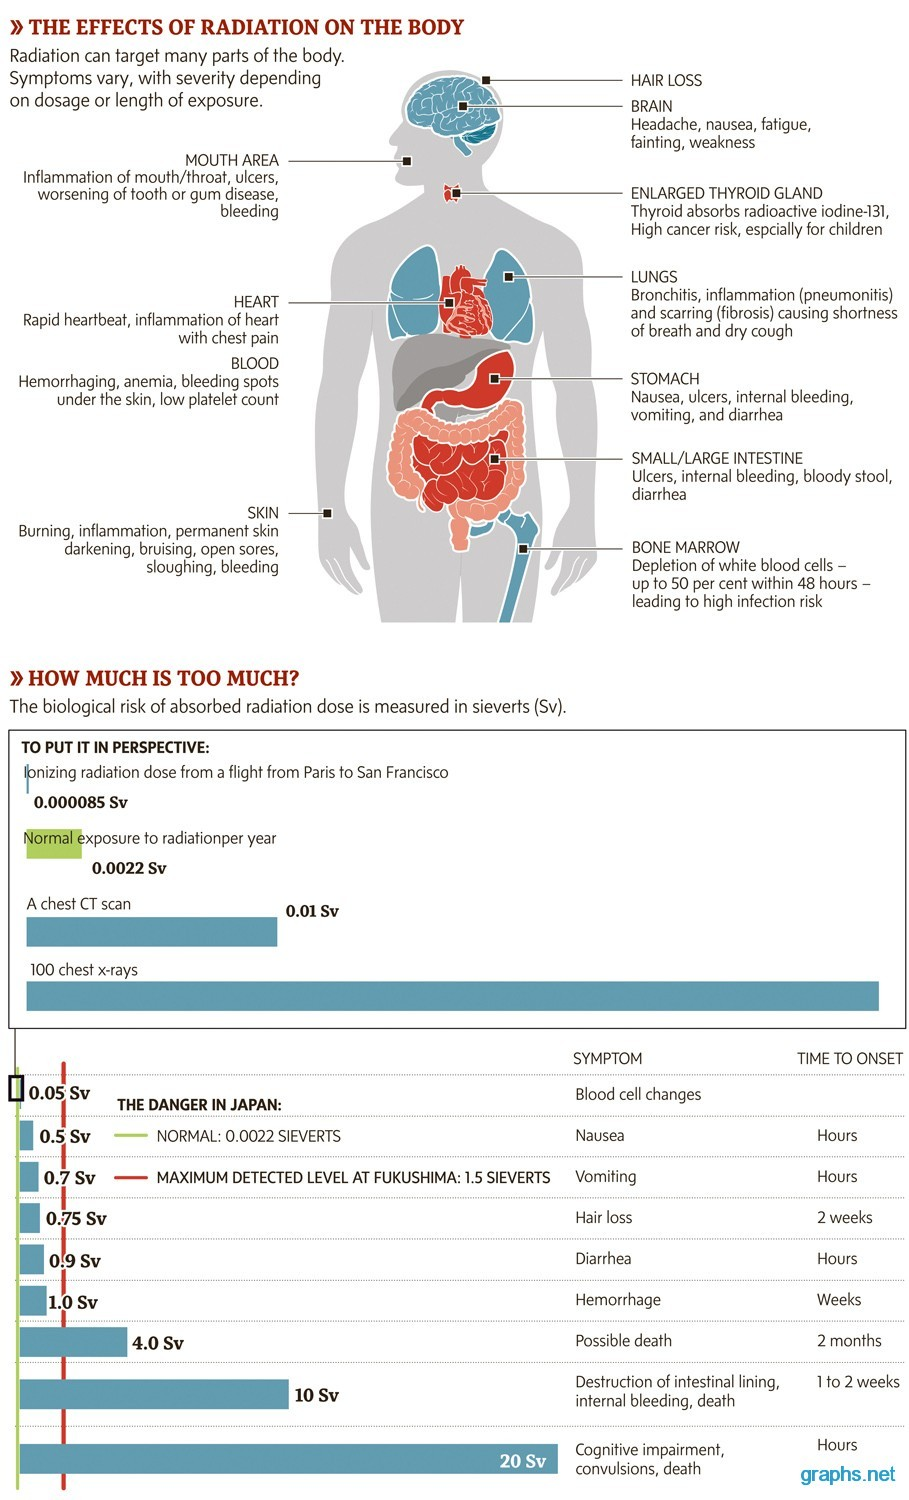 radiation effects on the body